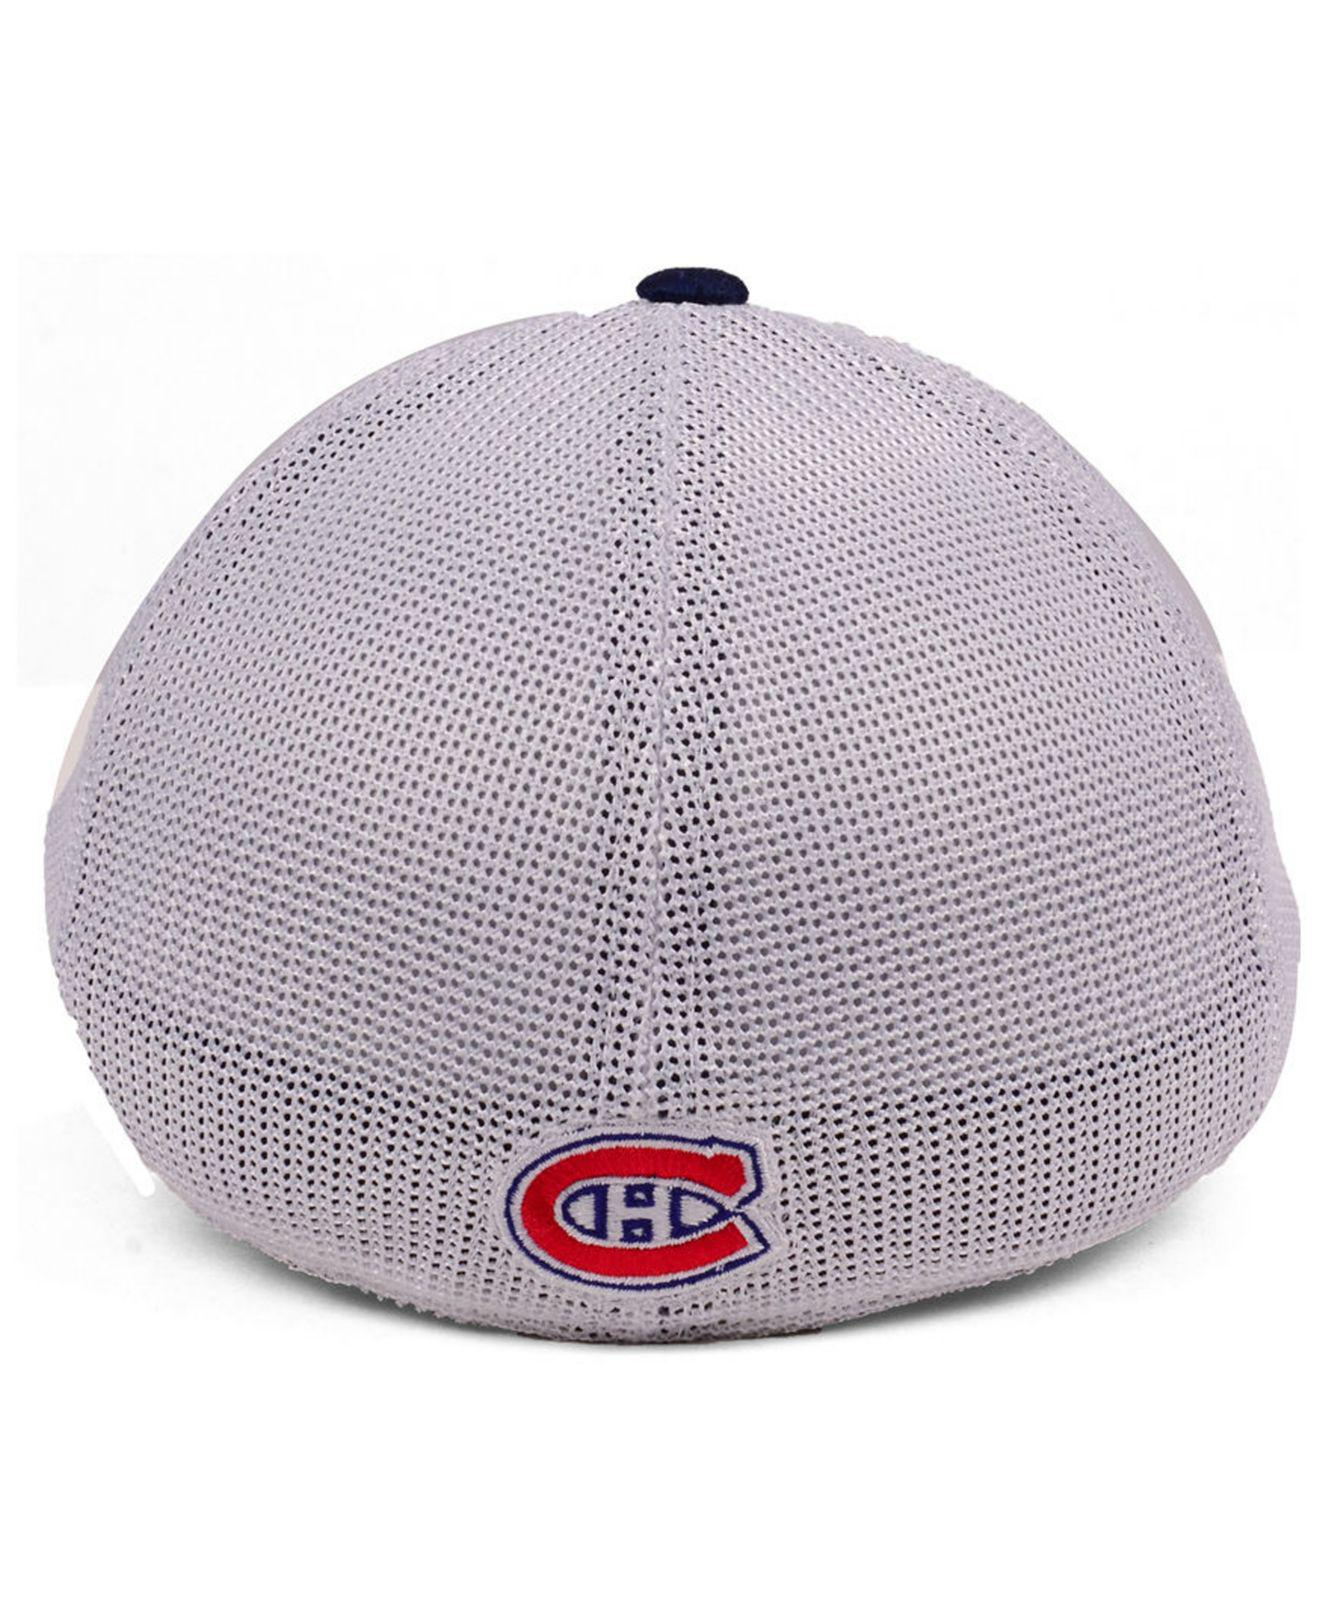 455efaf6 ... cheap hot product 04161 6e58b lyst adidas mesh flex cap in white for men  top quality